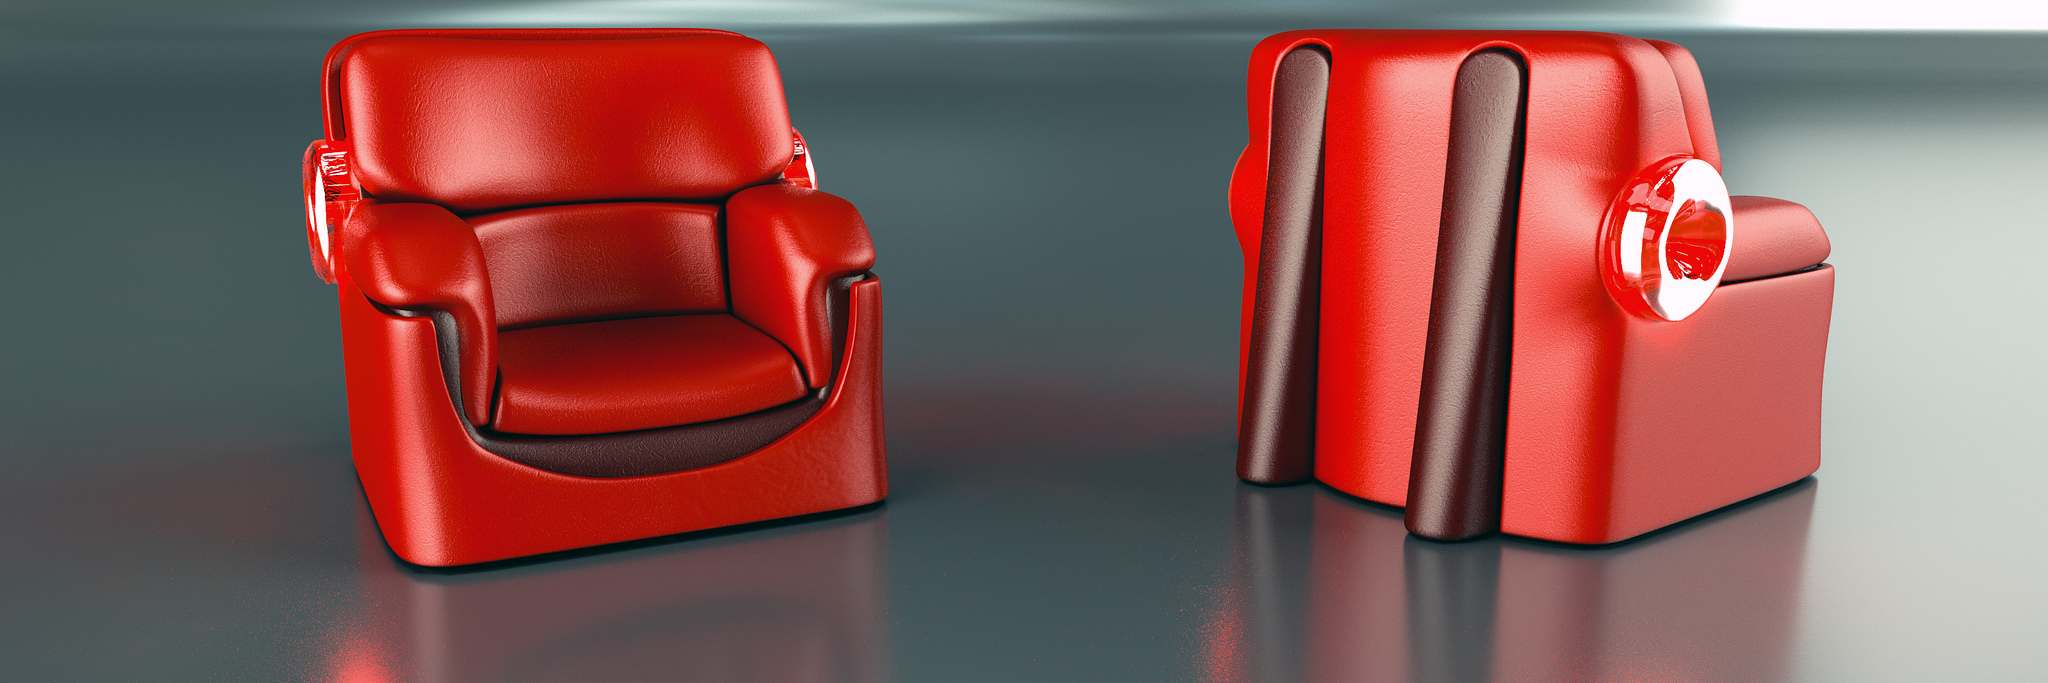 industrialdesign4 Industrial Design Modeled and Rendered in Modo by Mike Grauer